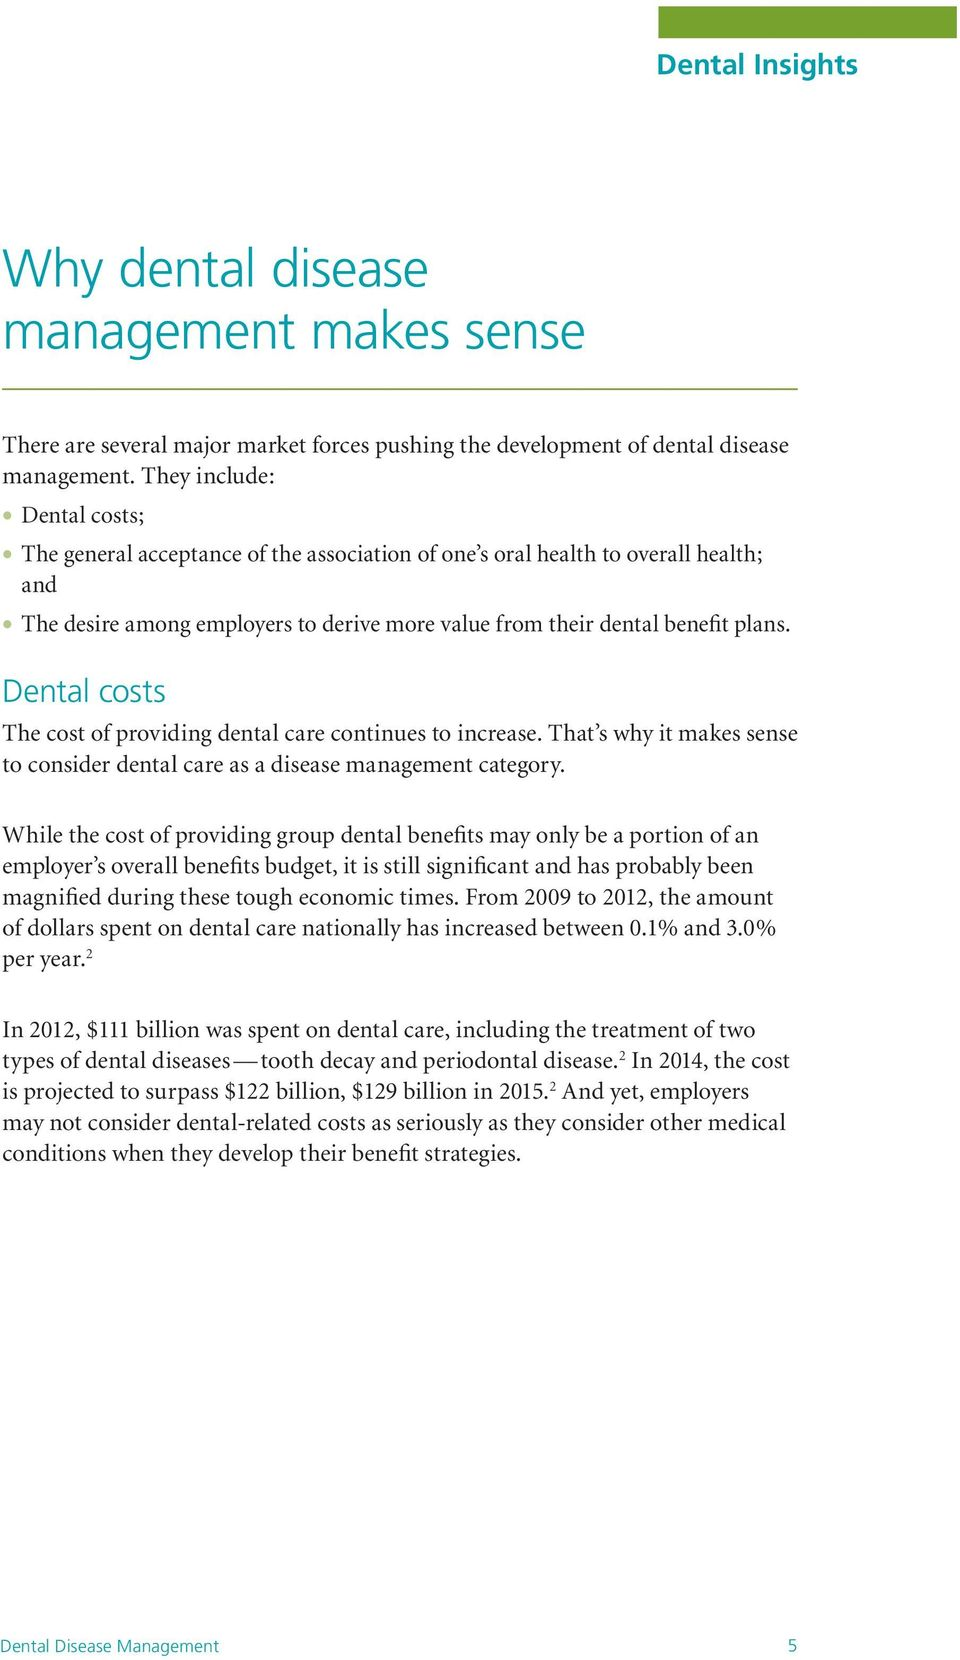 Dental costs The cost of providing dental care continues to increase. That s why it makes sense to consider dental care as a disease management category.